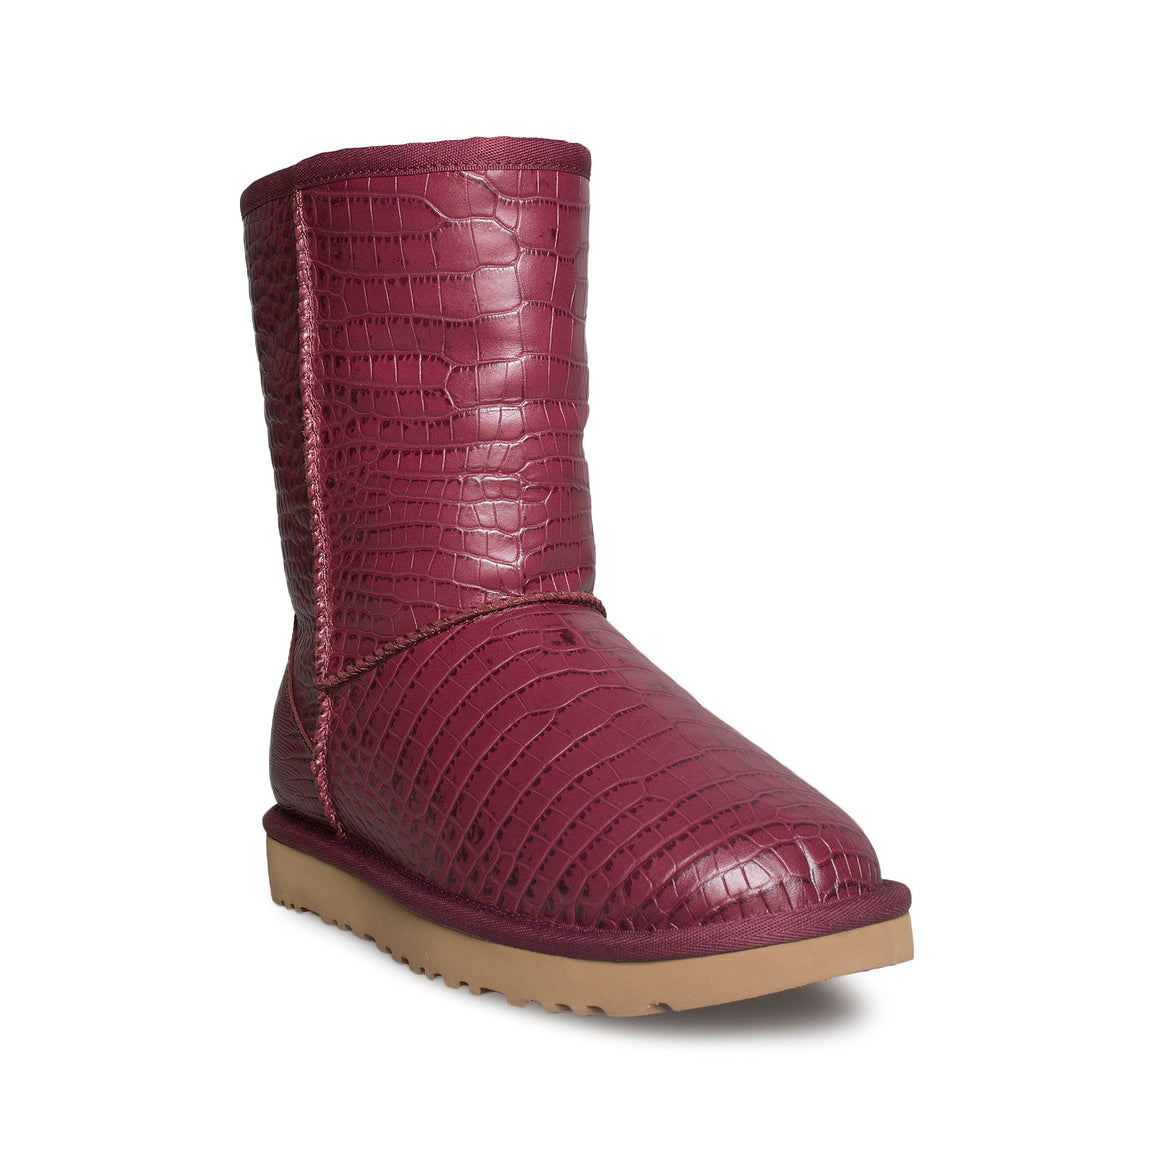 UGG Classic Short Croco Lonely Hearts Boots - Women's